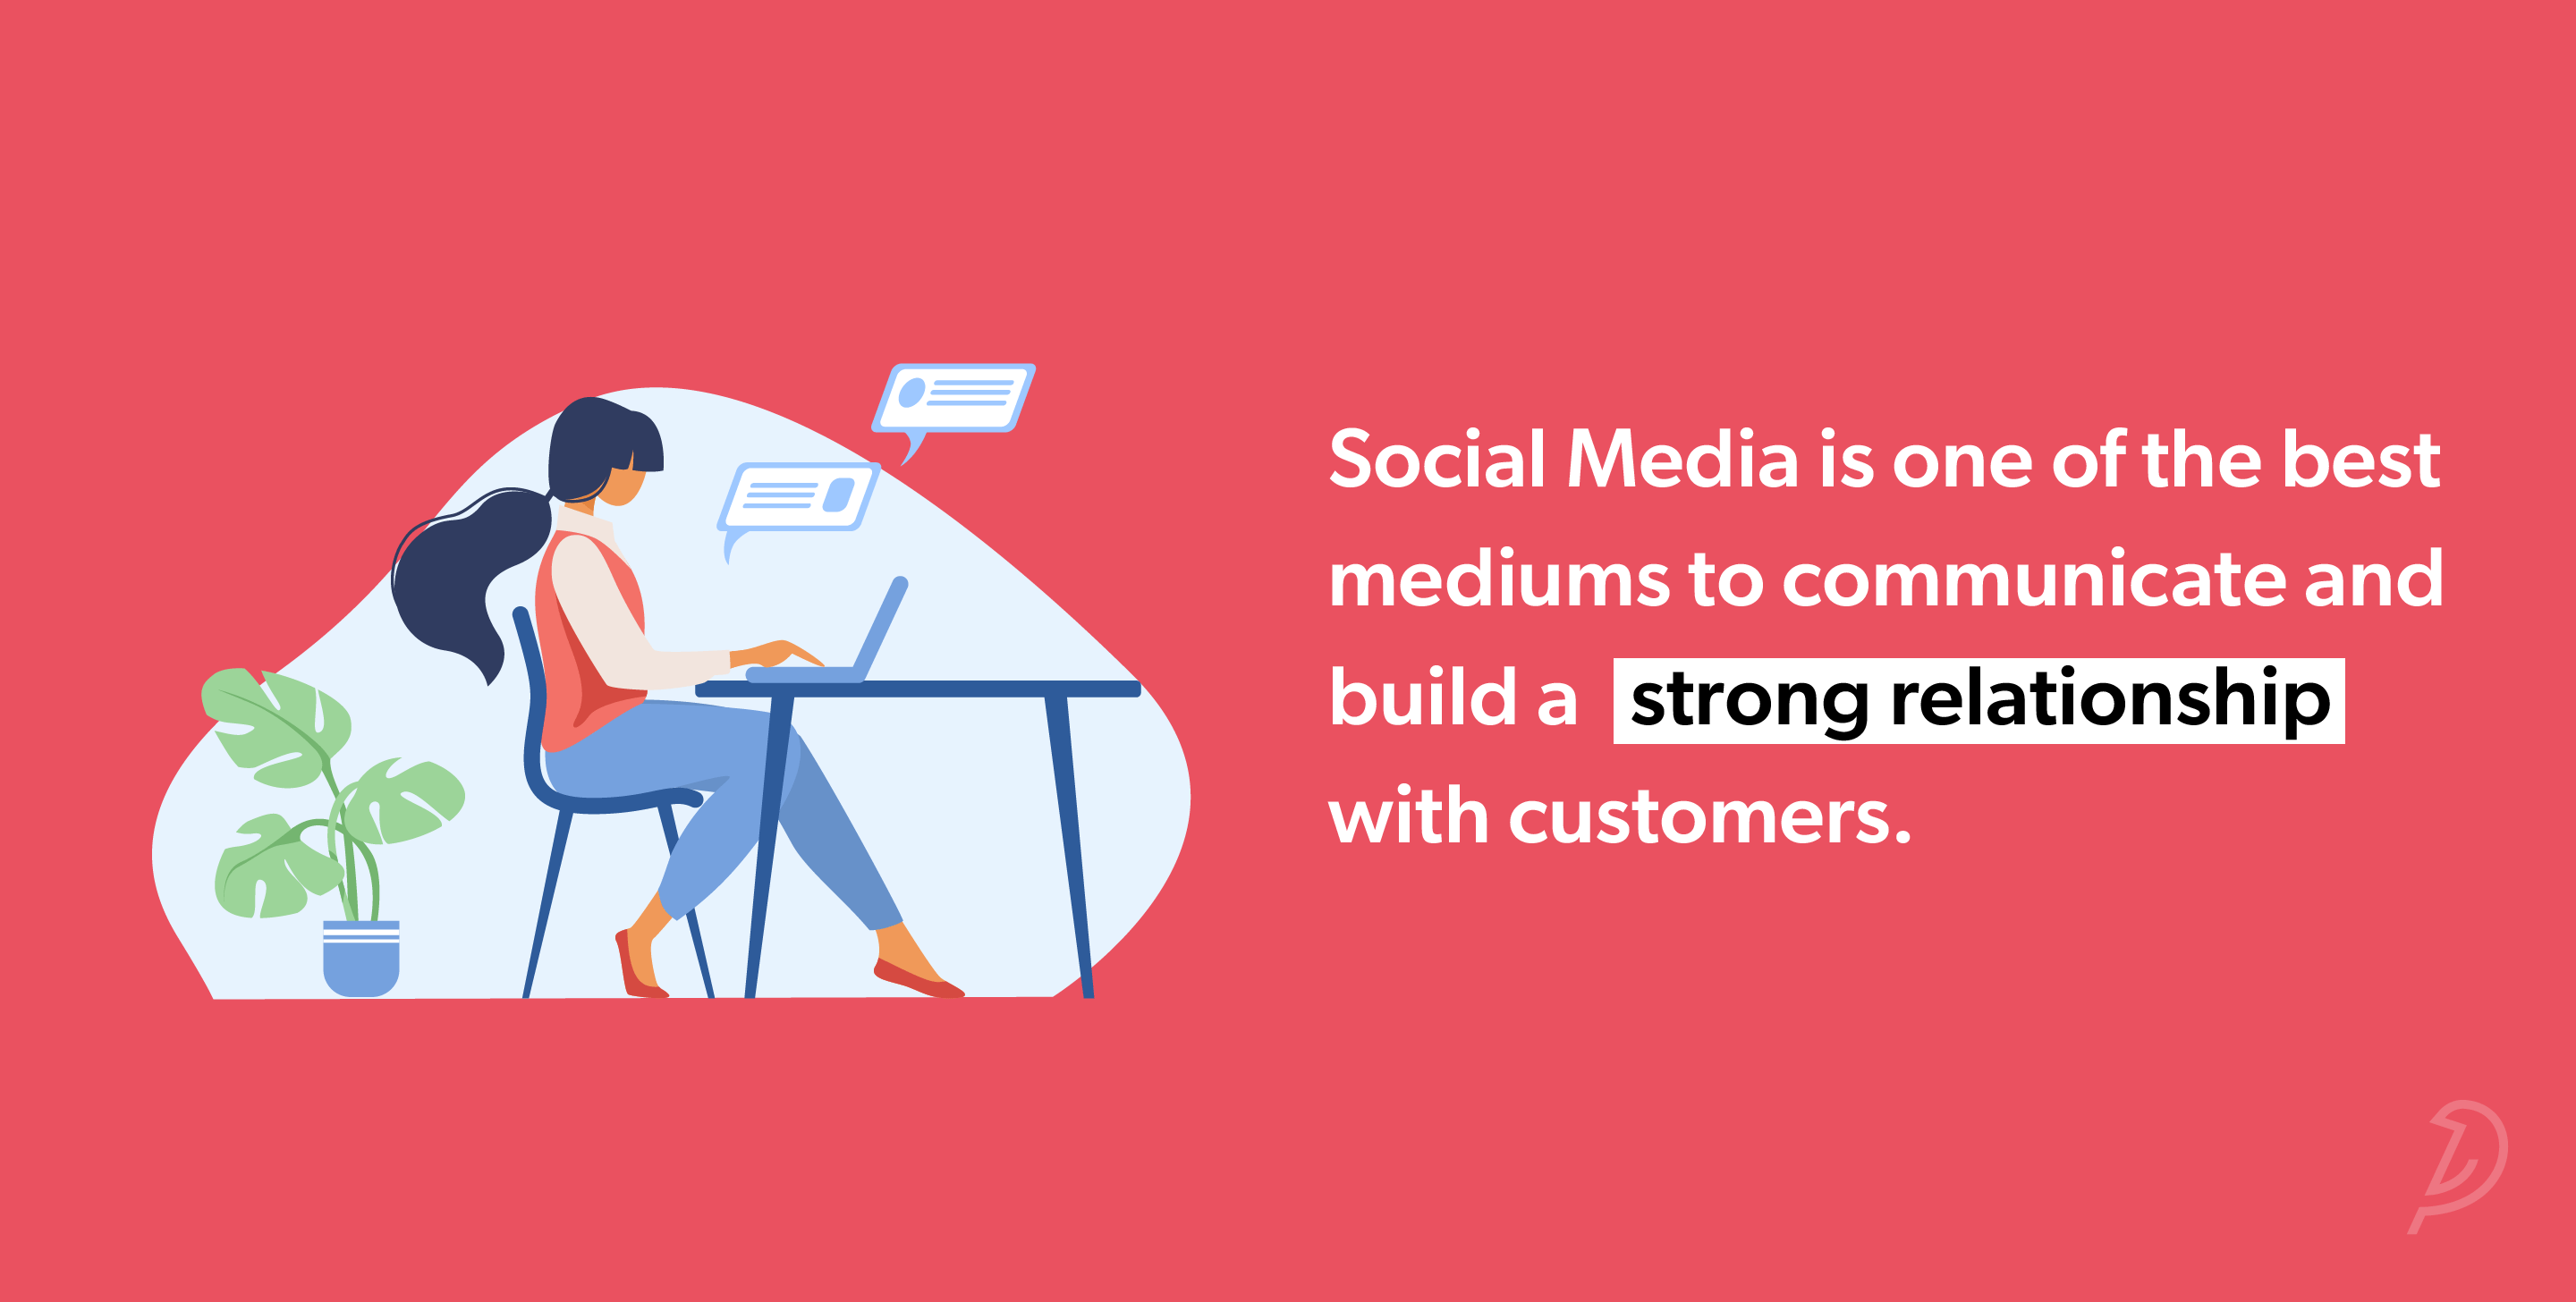 Social Media is one of the best mediums to communicate and build a strong relationship with customers.